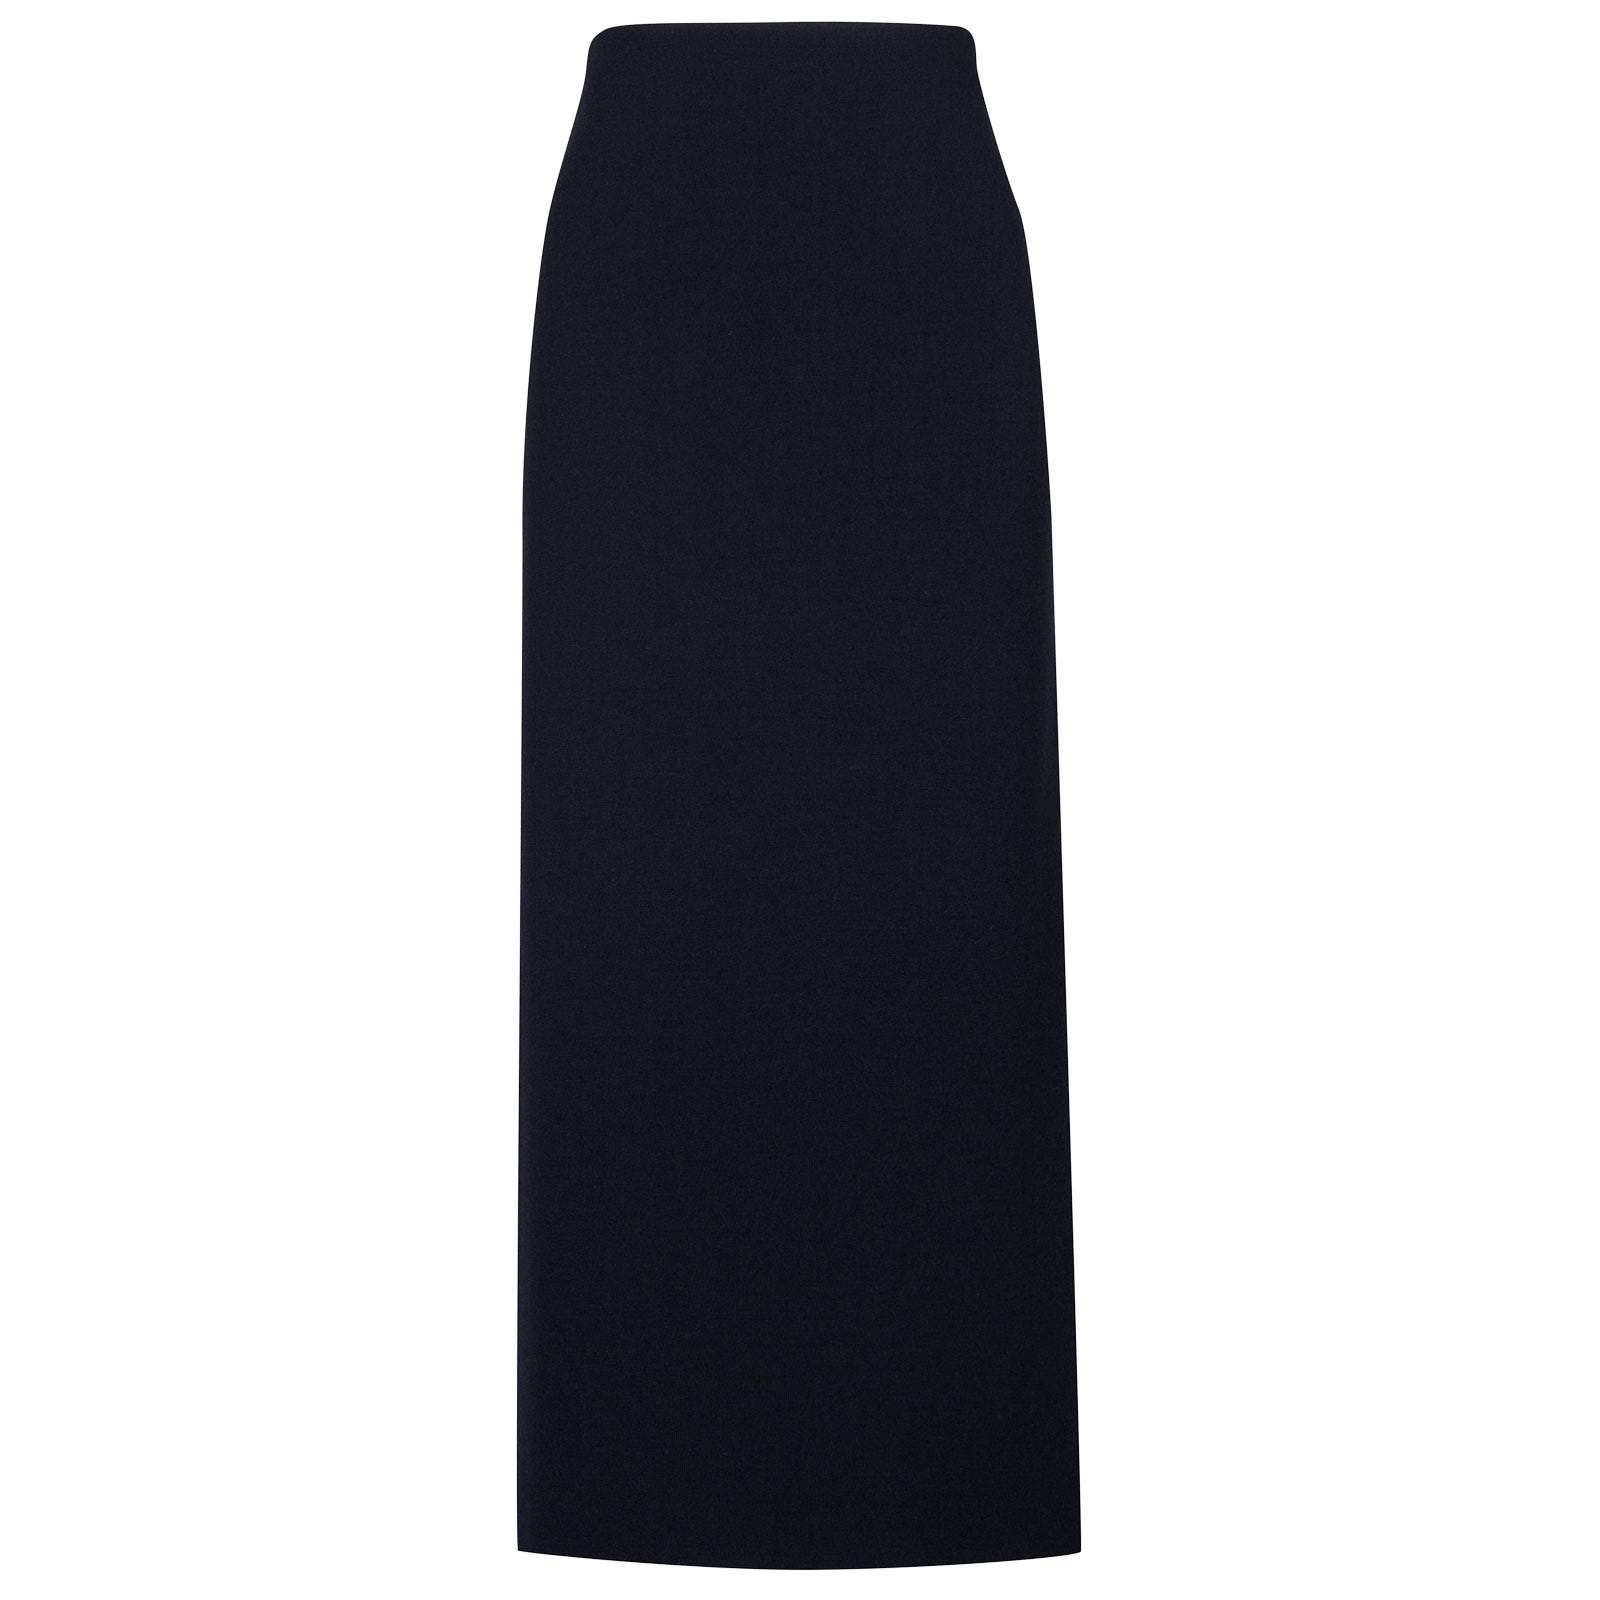 John Smedley moran Merino Wool Skirt in Midnight-L